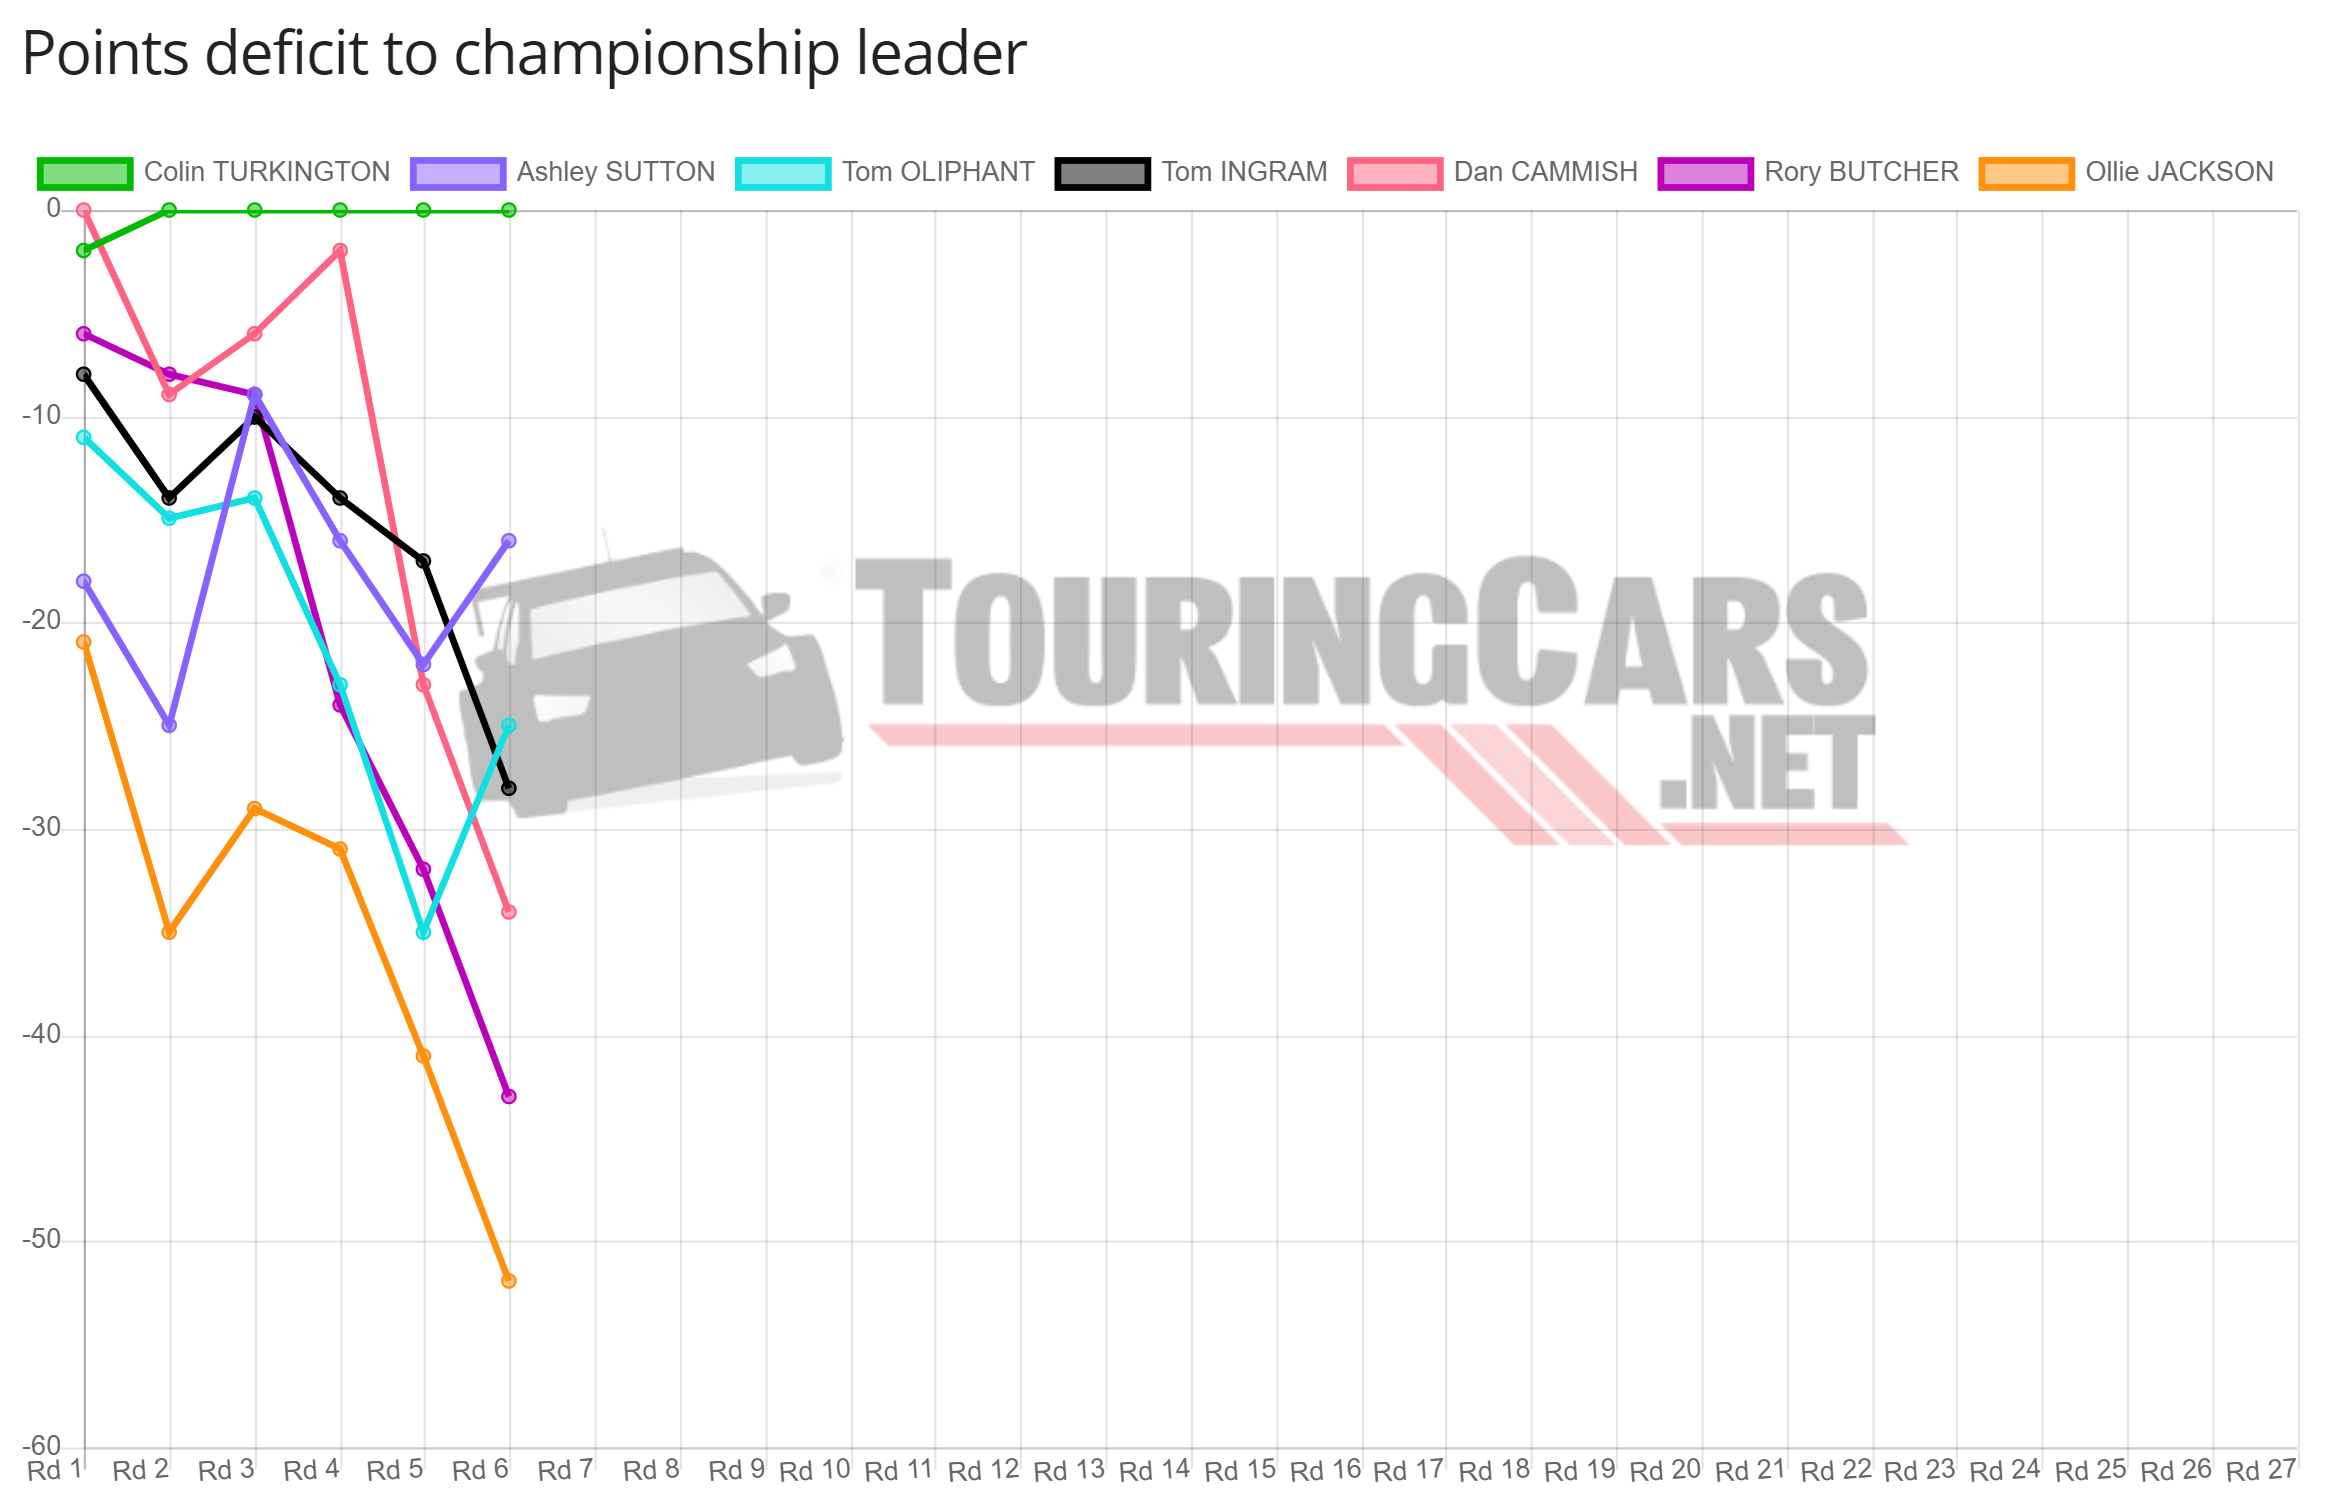 BTCC points deficit after Round 6